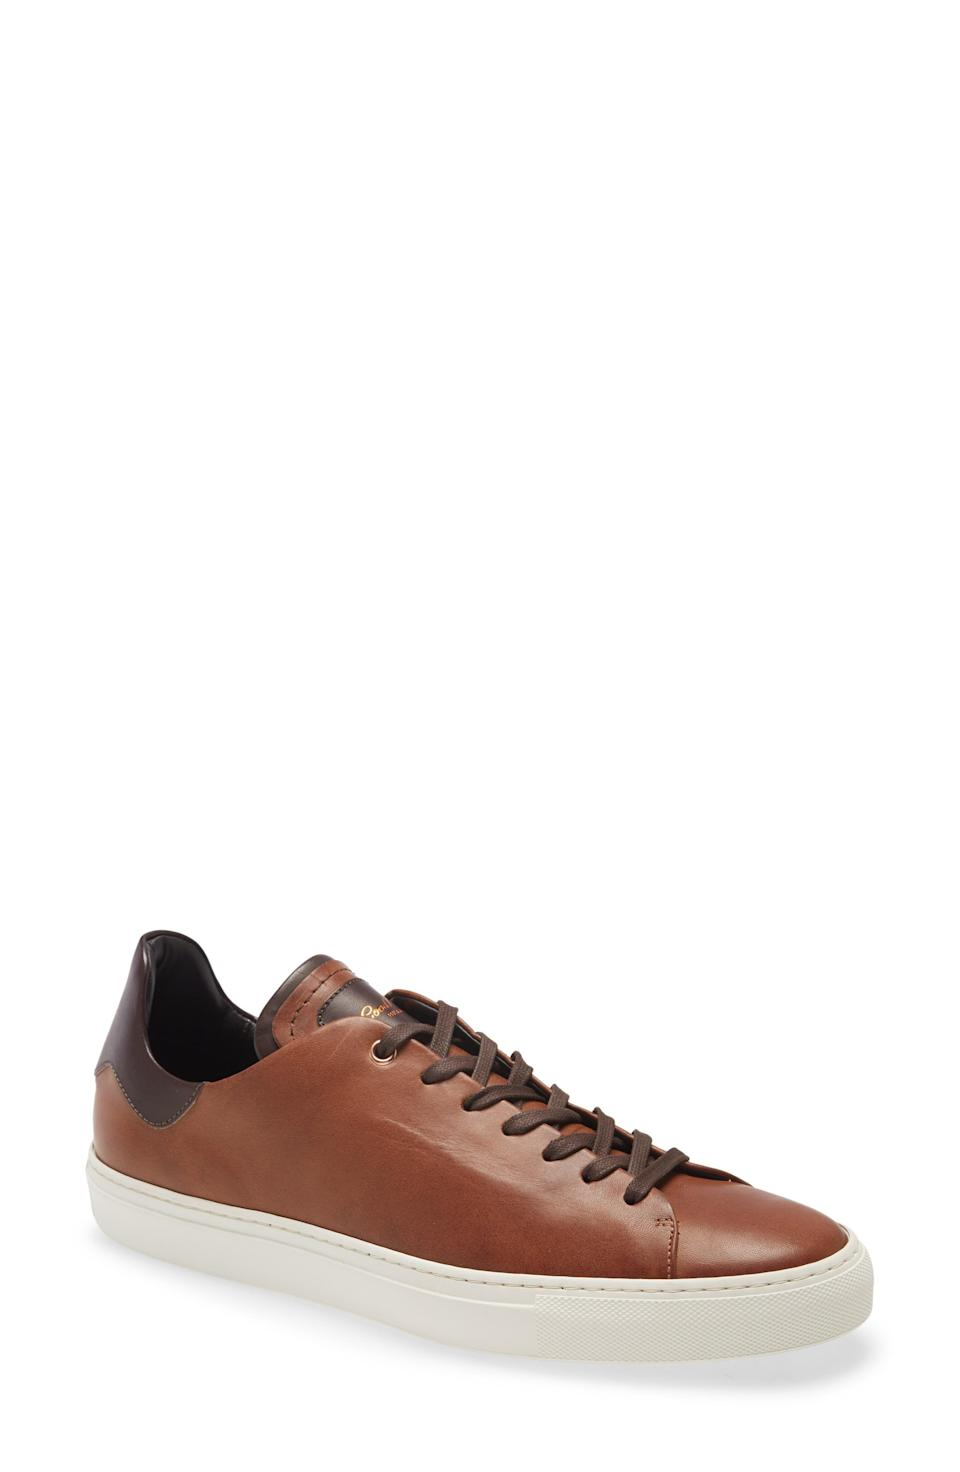 """<p><strong>Good Man Brand</strong></p><p>nordstrom.com</p><p><strong>$129.90</strong></p><p><a href=""""https://go.redirectingat.com?id=74968X1596630&url=https%3A%2F%2Fwww.nordstrom.com%2Fs%2Fgood-man-brand-legend-z-low-top-modern-core-sneaker-men%2F5799127&sref=https%3A%2F%2Fwww.menshealth.com%2Fstyle%2Fg37081969%2Fnordstroms-anniversary-sale-best-sneakers%2F"""" rel=""""nofollow noopener"""" target=""""_blank"""" data-ylk=""""slk:BUY IT HERE"""" class=""""link rapid-noclick-resp"""">BUY IT HERE</a></p><p><del>$198</del><br><strong>$129.90</strong></p><p>Of course, for the moments when you want or need an added level of polish, a pair of leather sneakers will always be a good option. These are sure to be a staple in your closet for years to come.</p>"""